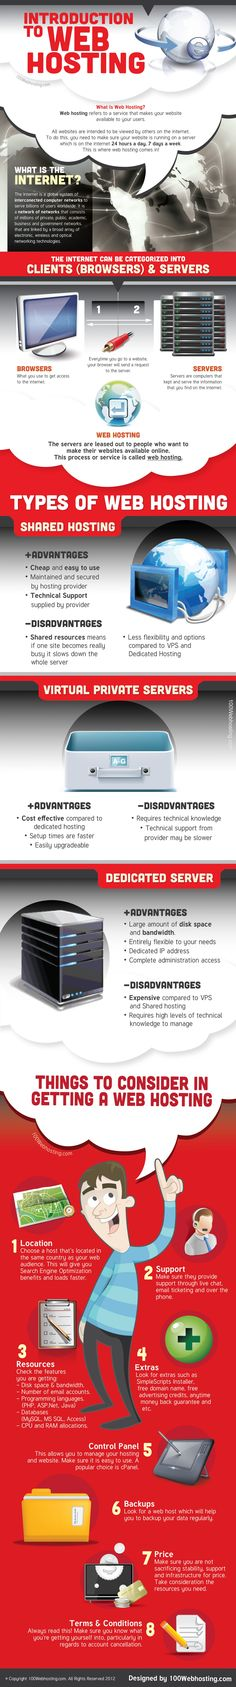 What is web hosting? This infographic explains it graphically. What are web hosting types? Shared web hosting vs VPS vs Dedicated servers.